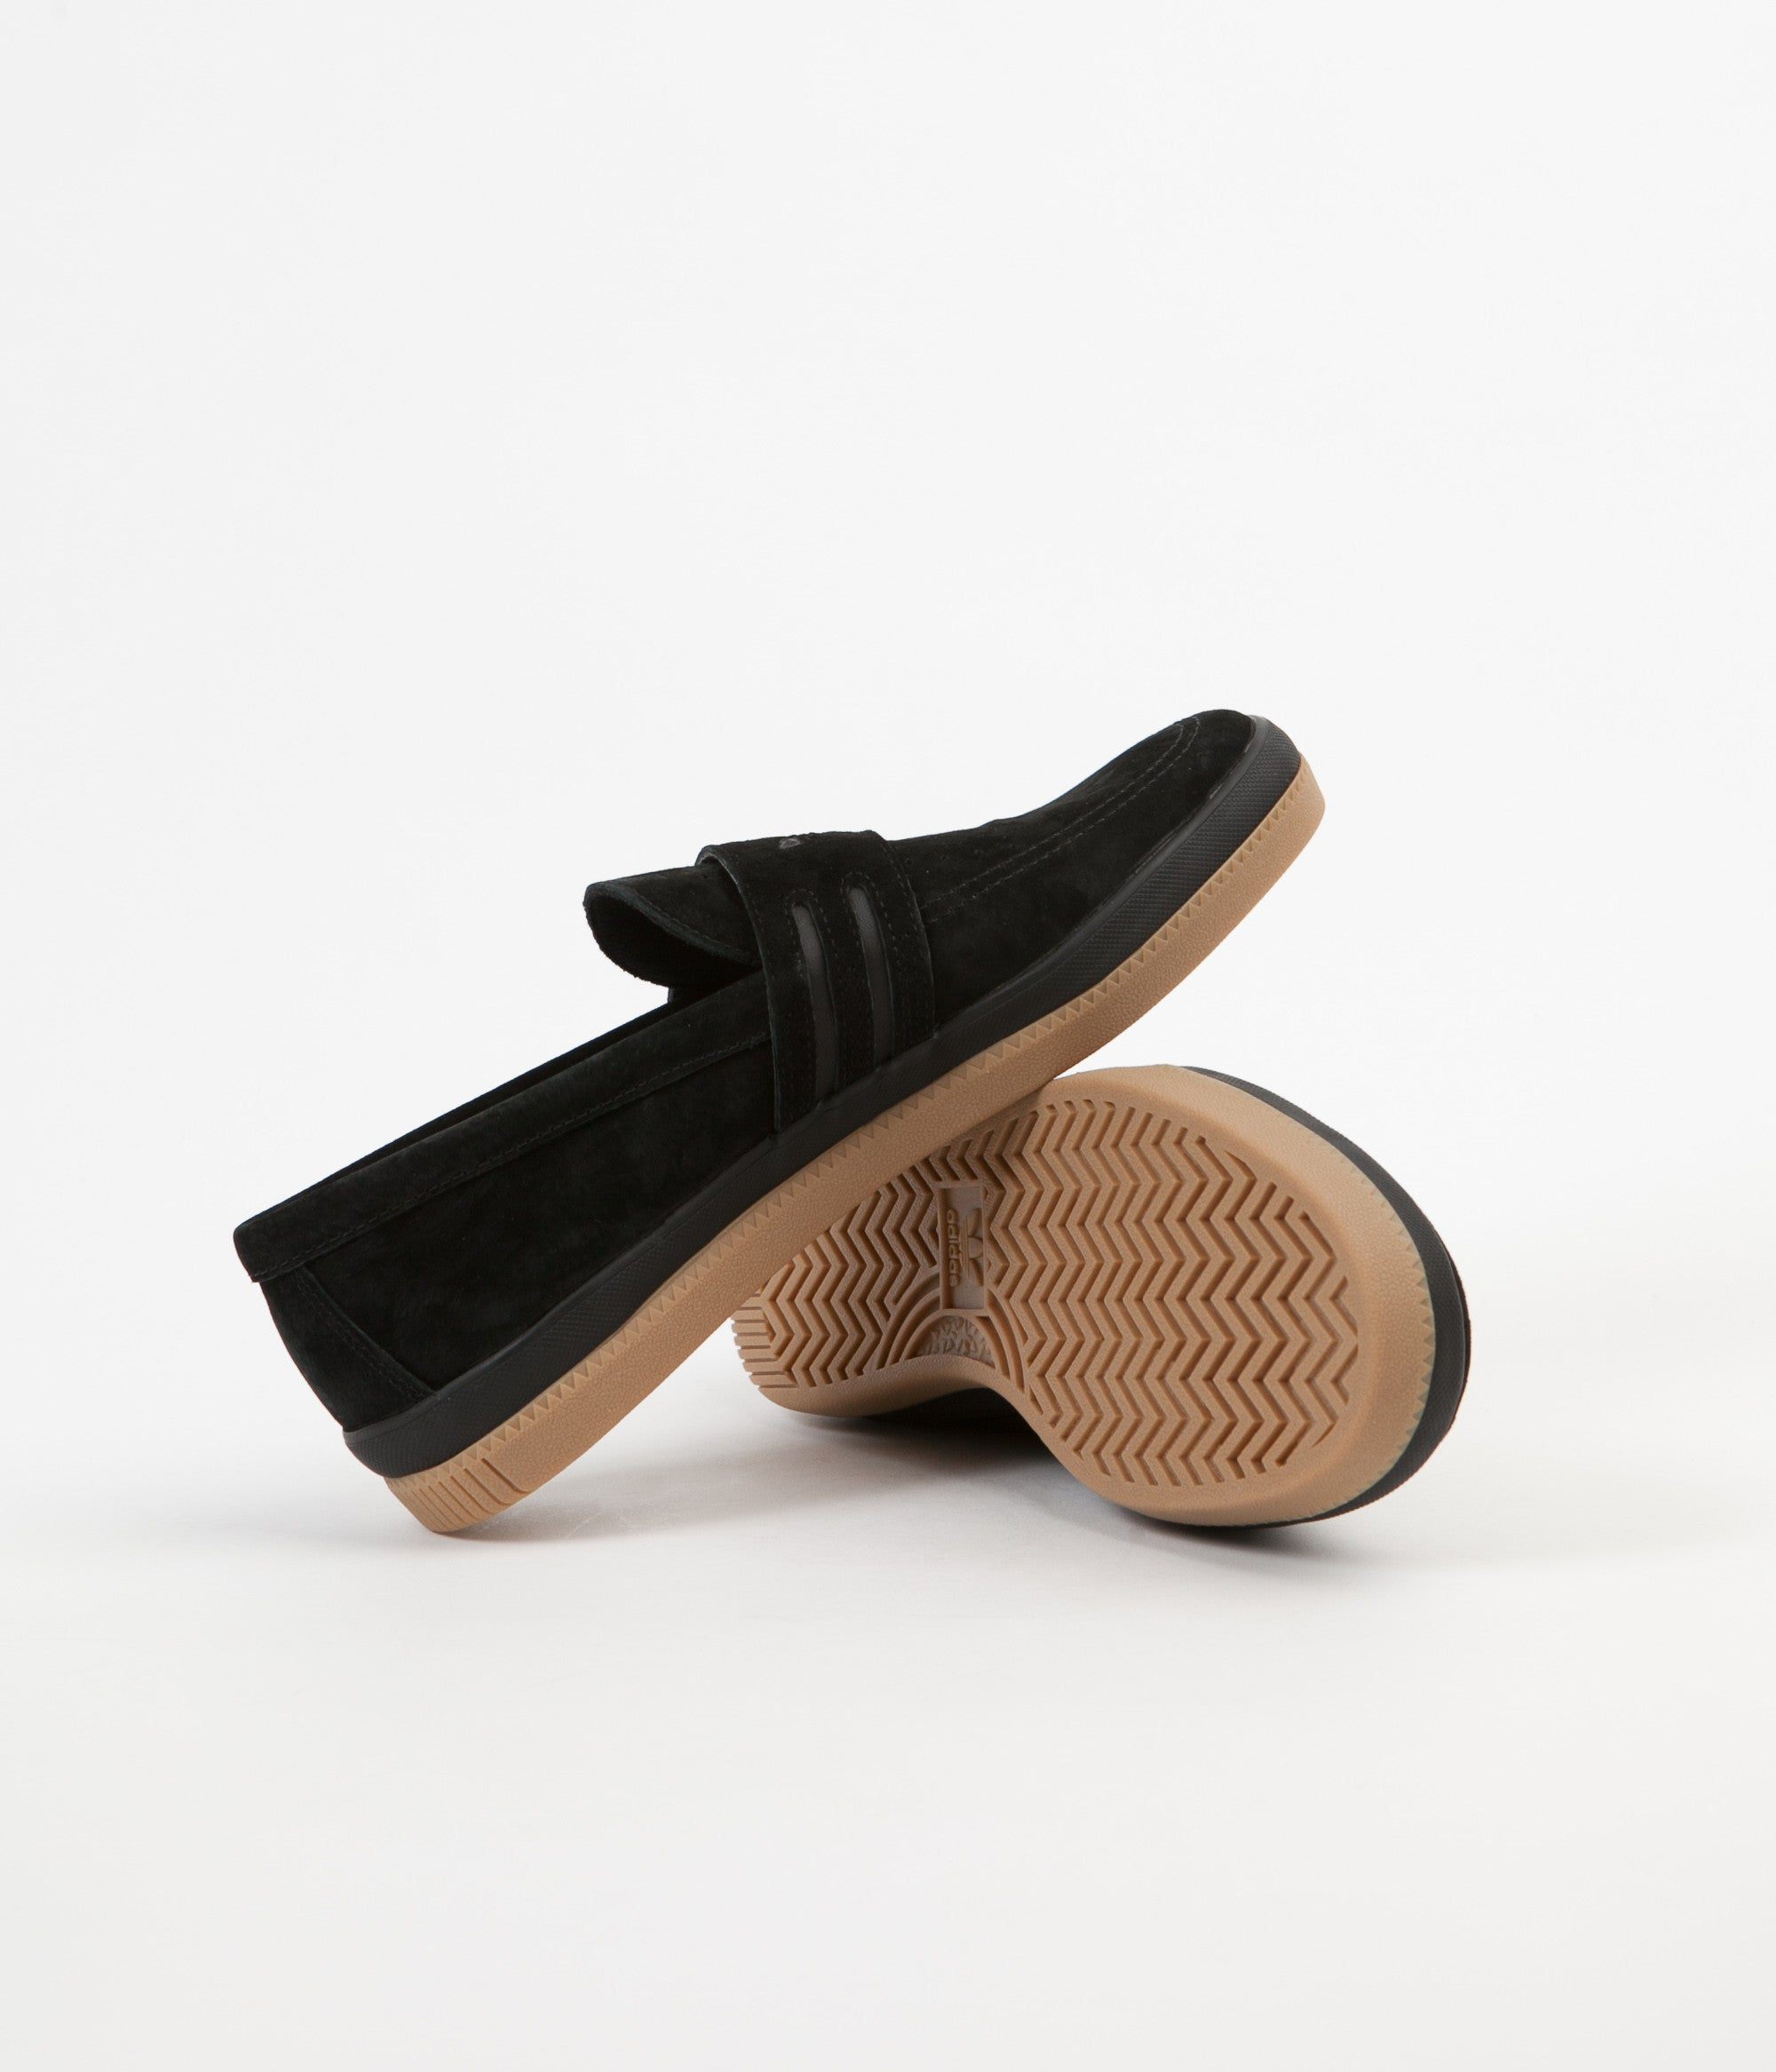 Adidas Acapulco Shoes - Core Black / Core Black / Gum4